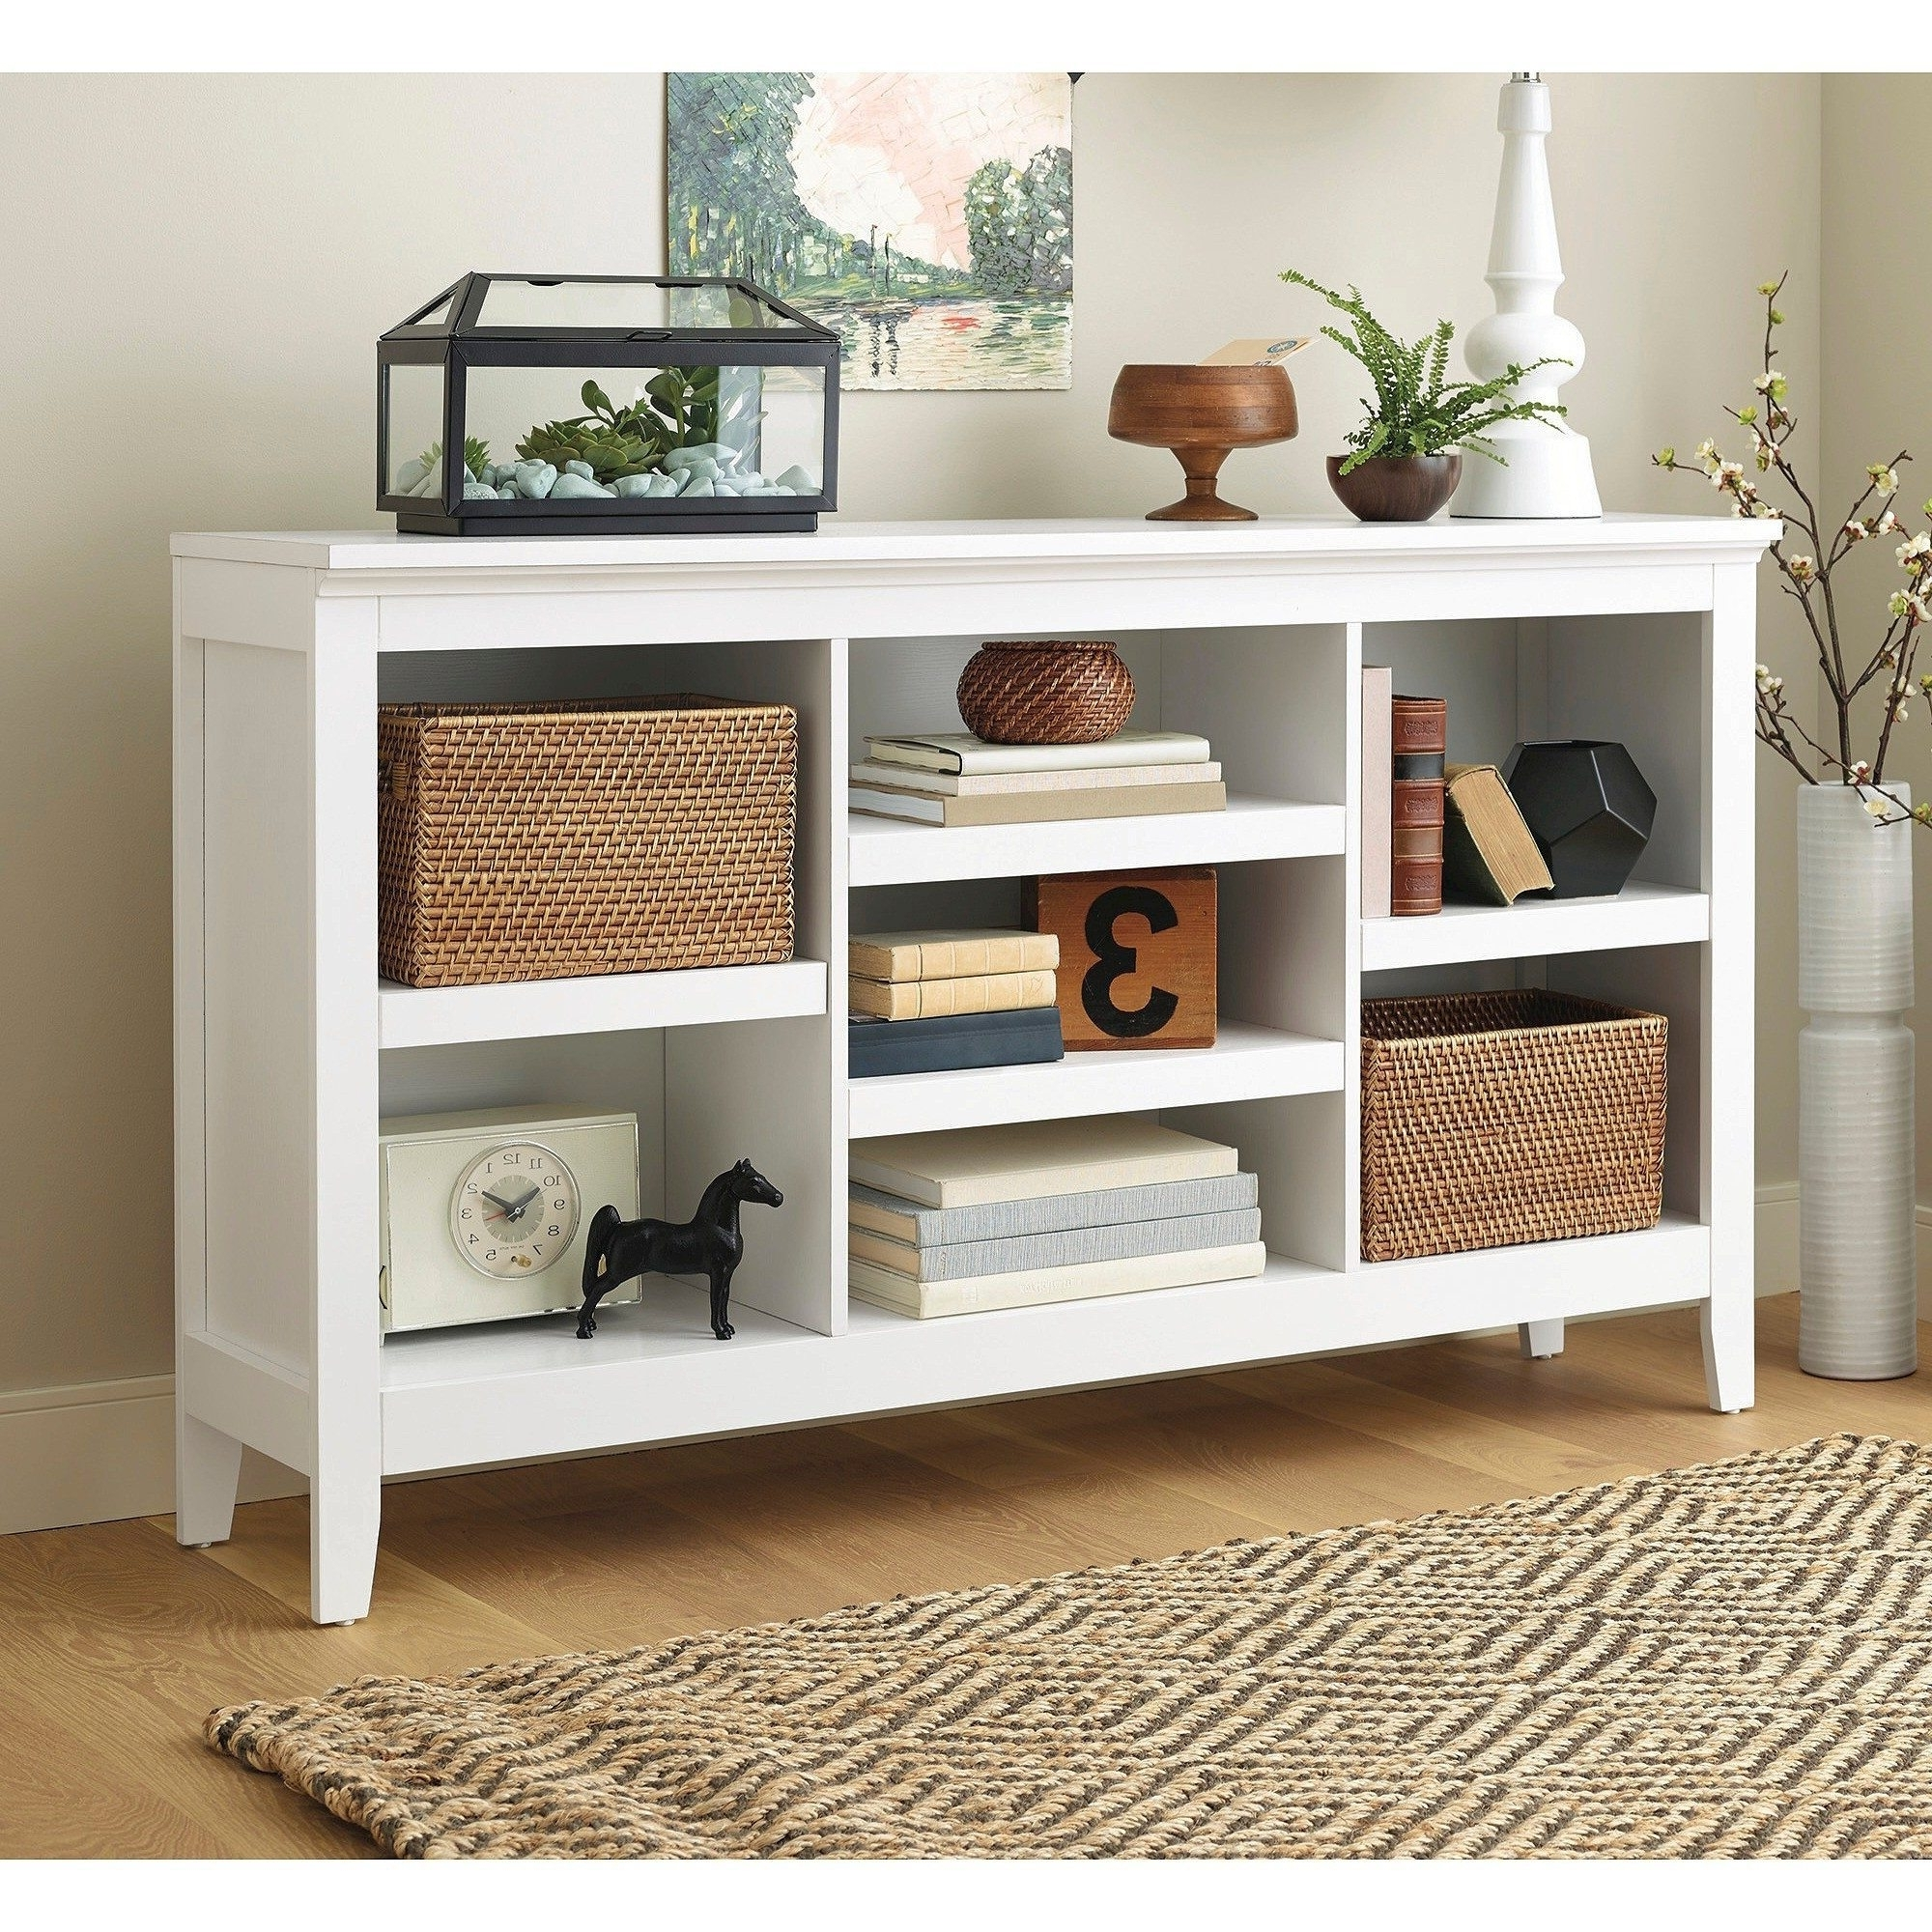 Well Liked Lowes Bookcases With Regard To Astounding Target Bookcase Images Design Inspiration – Tikspor (View 15 of 15)